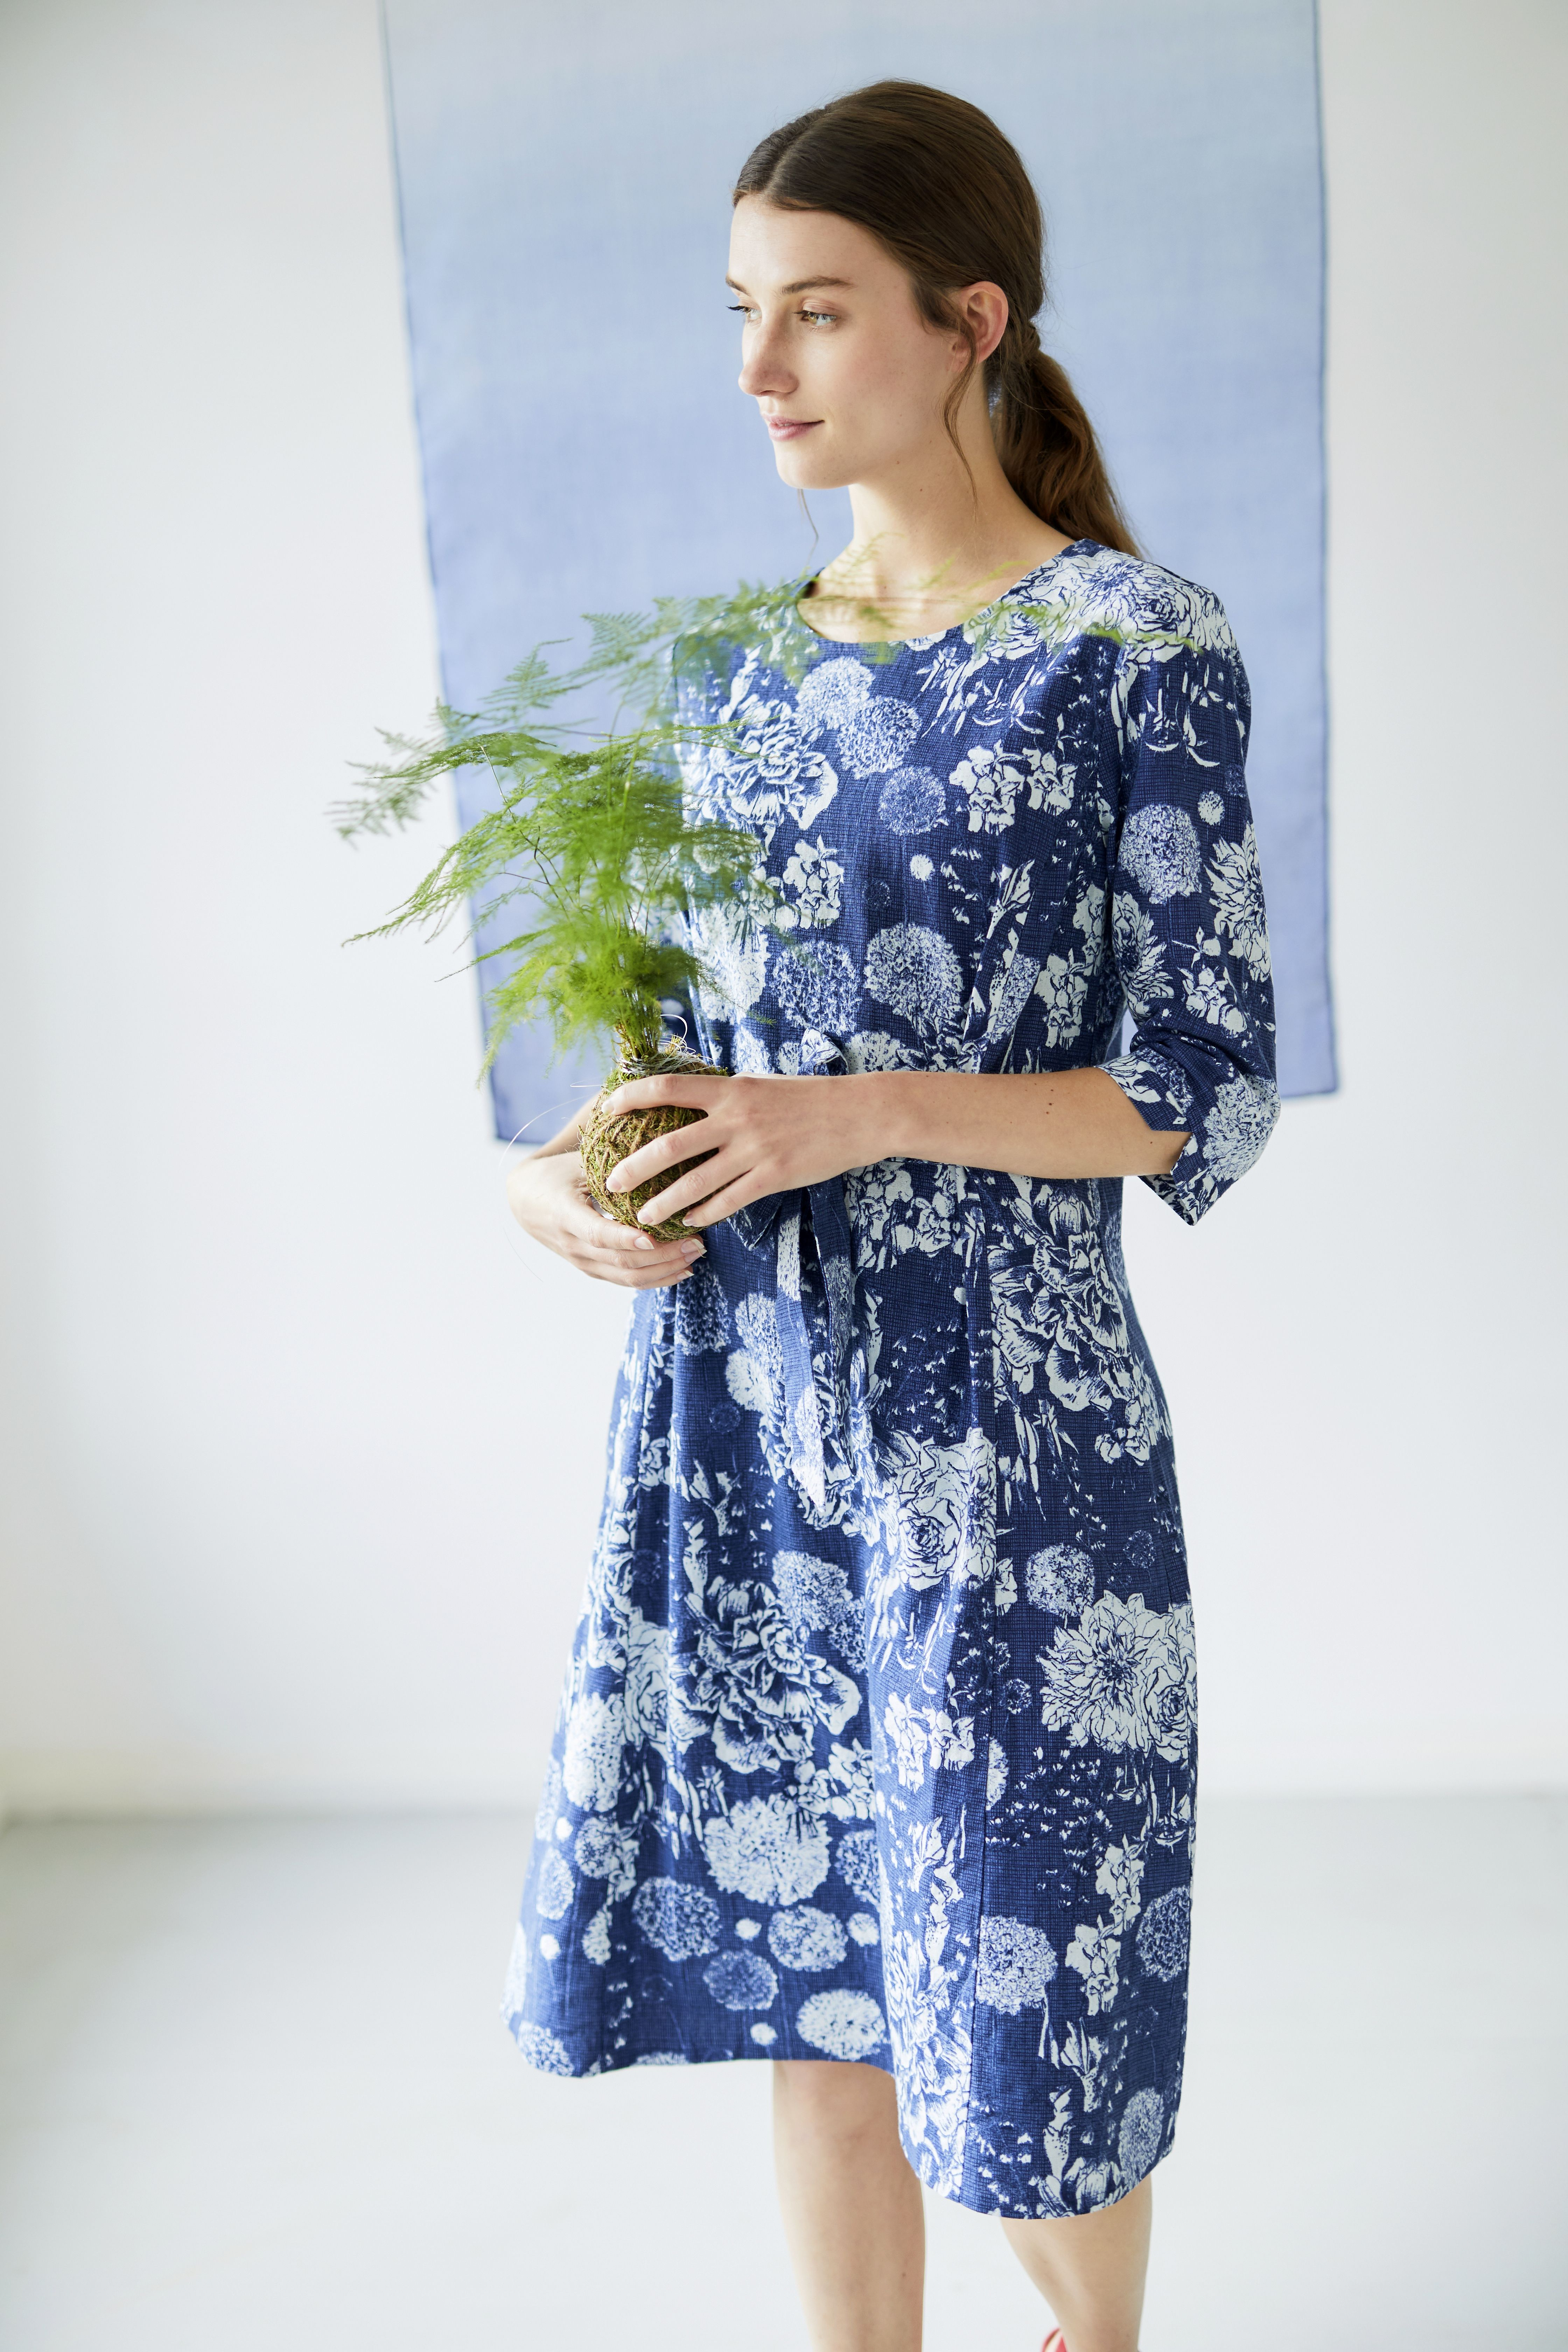 d503656a1f367 In a breathable hemp blend, this floral knee length dress features an  exclusive print inspired by model, artist and photographer, Lee Miller.